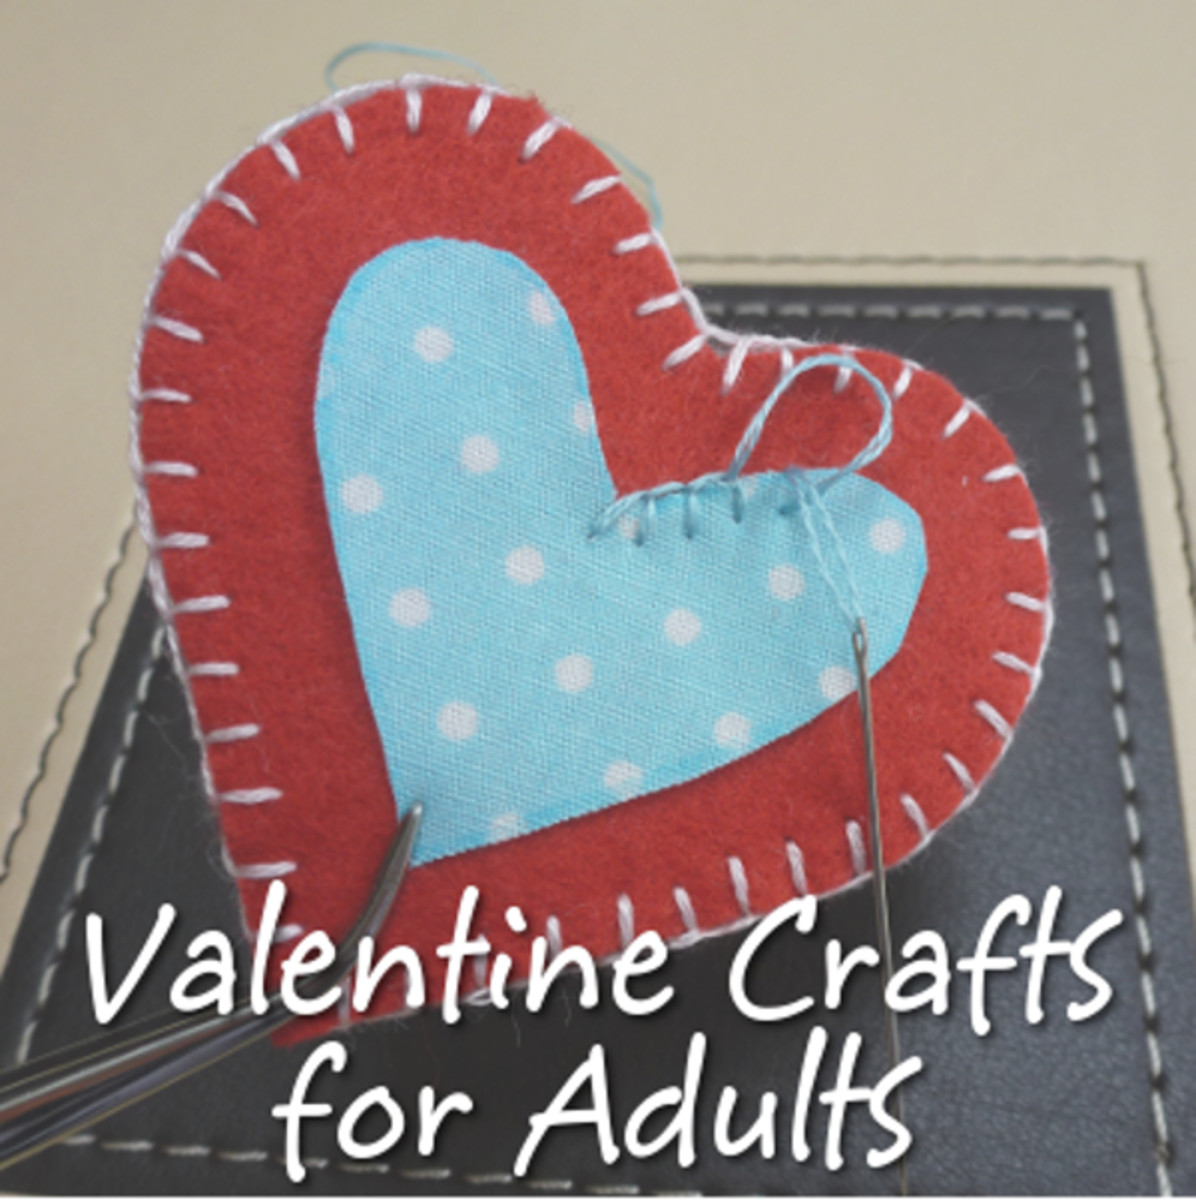 Fun Valentine Crafts For Adults To Make Hubpages